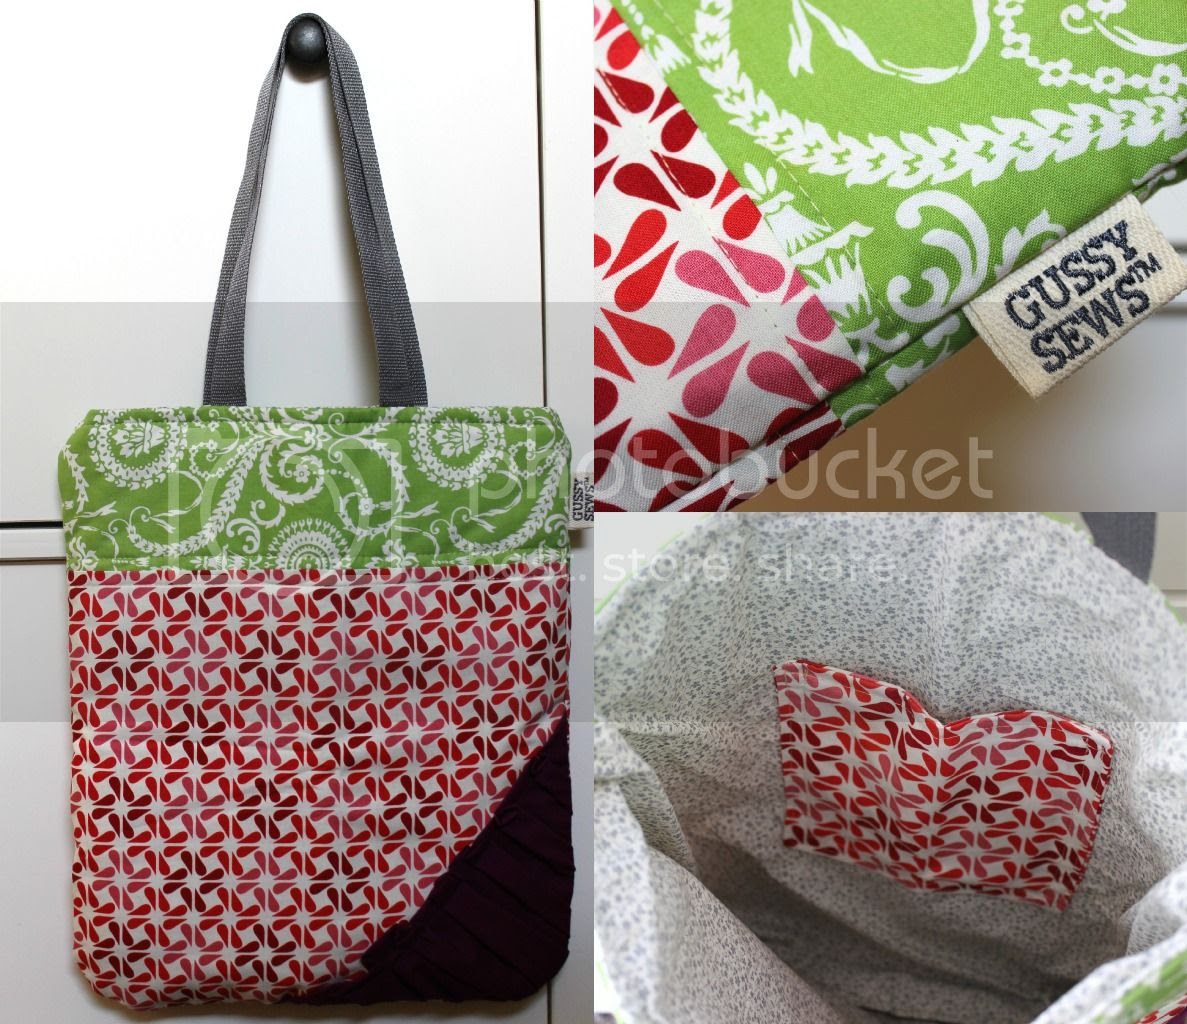 Gussy Sews Market Tote